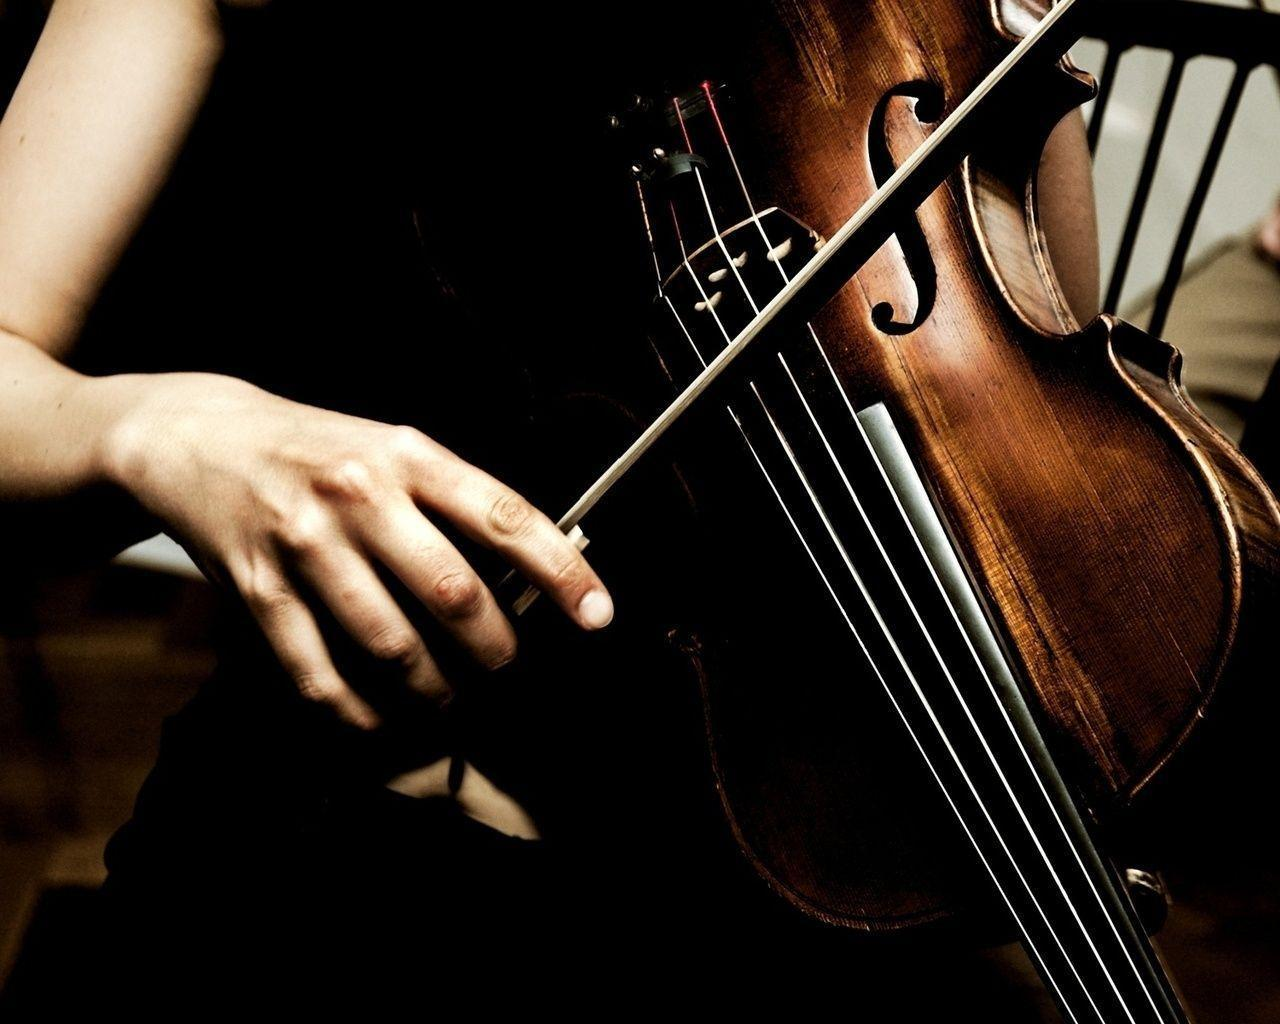 Cello Wallpapers - Wallpaper Cave